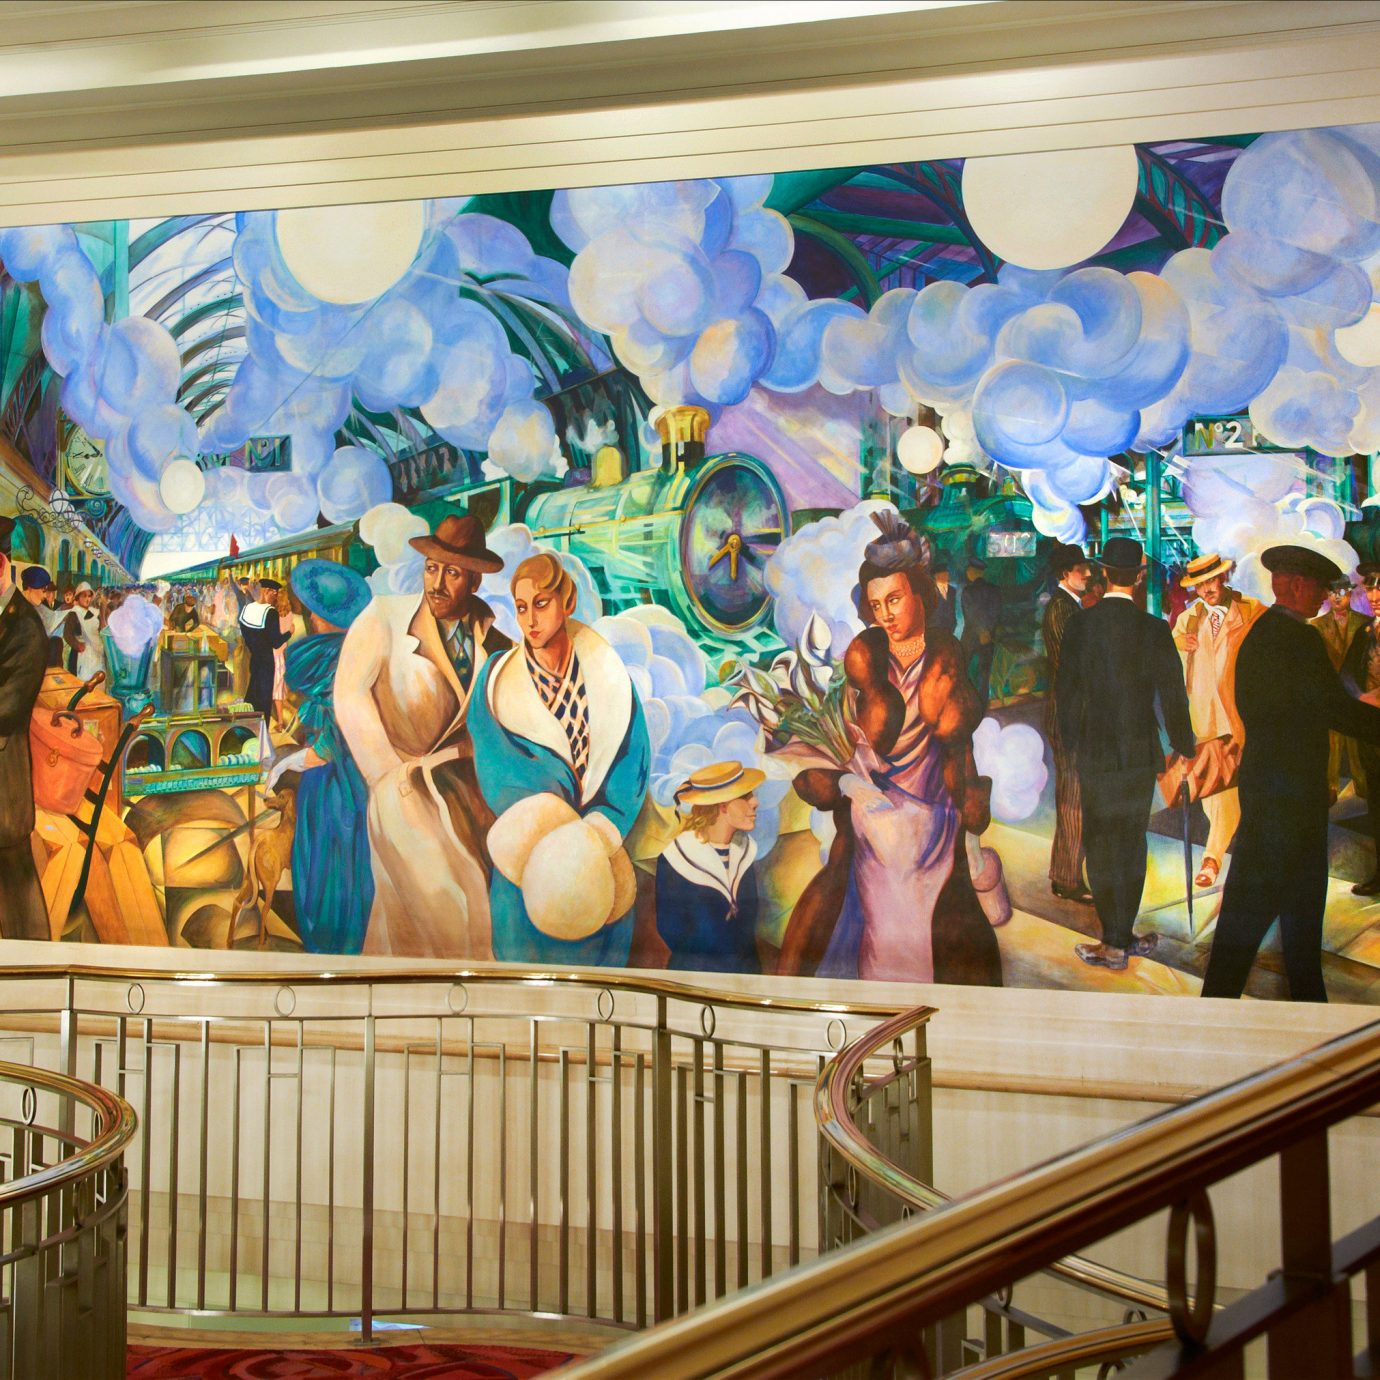 mural art amusement park tourist attraction art gallery modern art